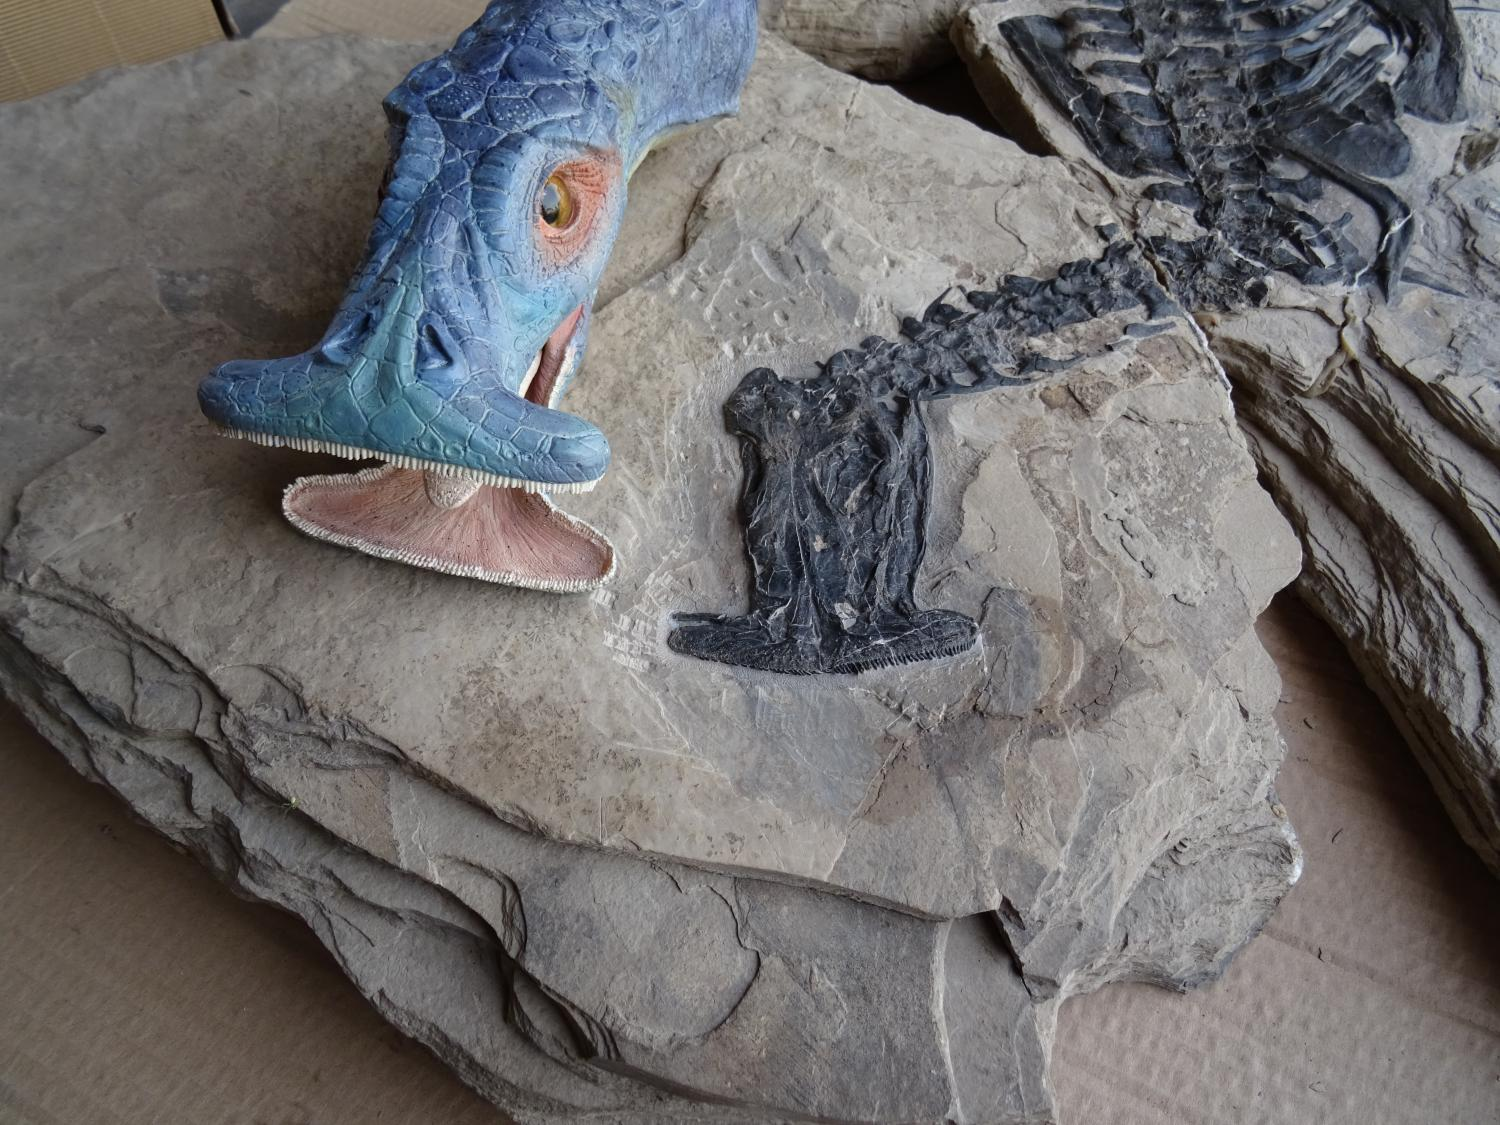 World's first plant-eating marine reptile on Earth